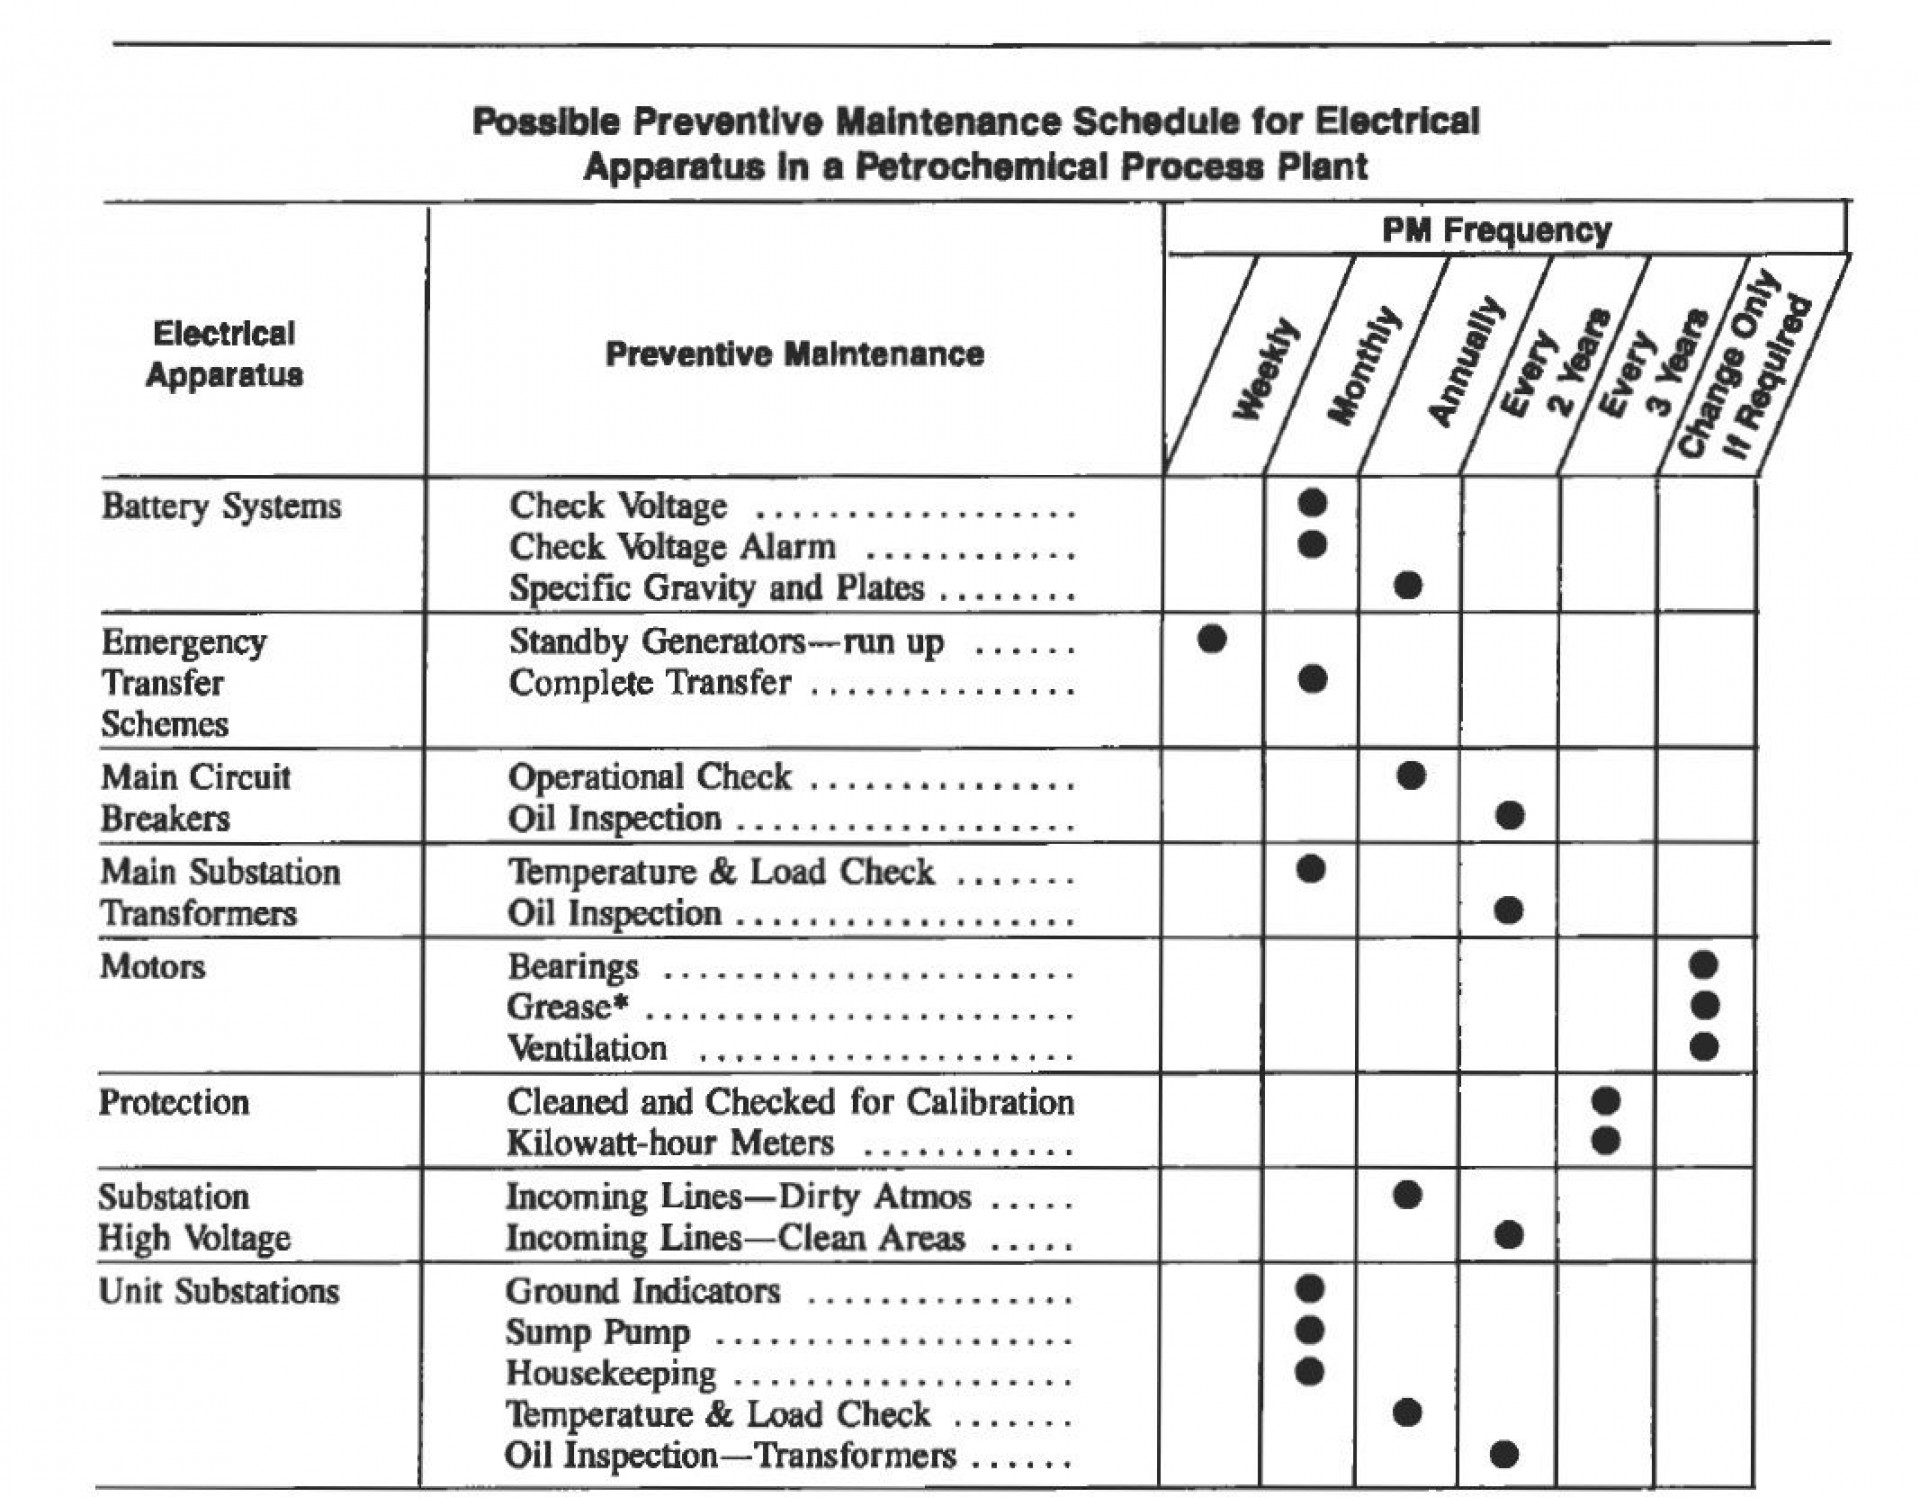 006 Fearsome Preventive Maintenance Template Excel Download Example  Computer1920